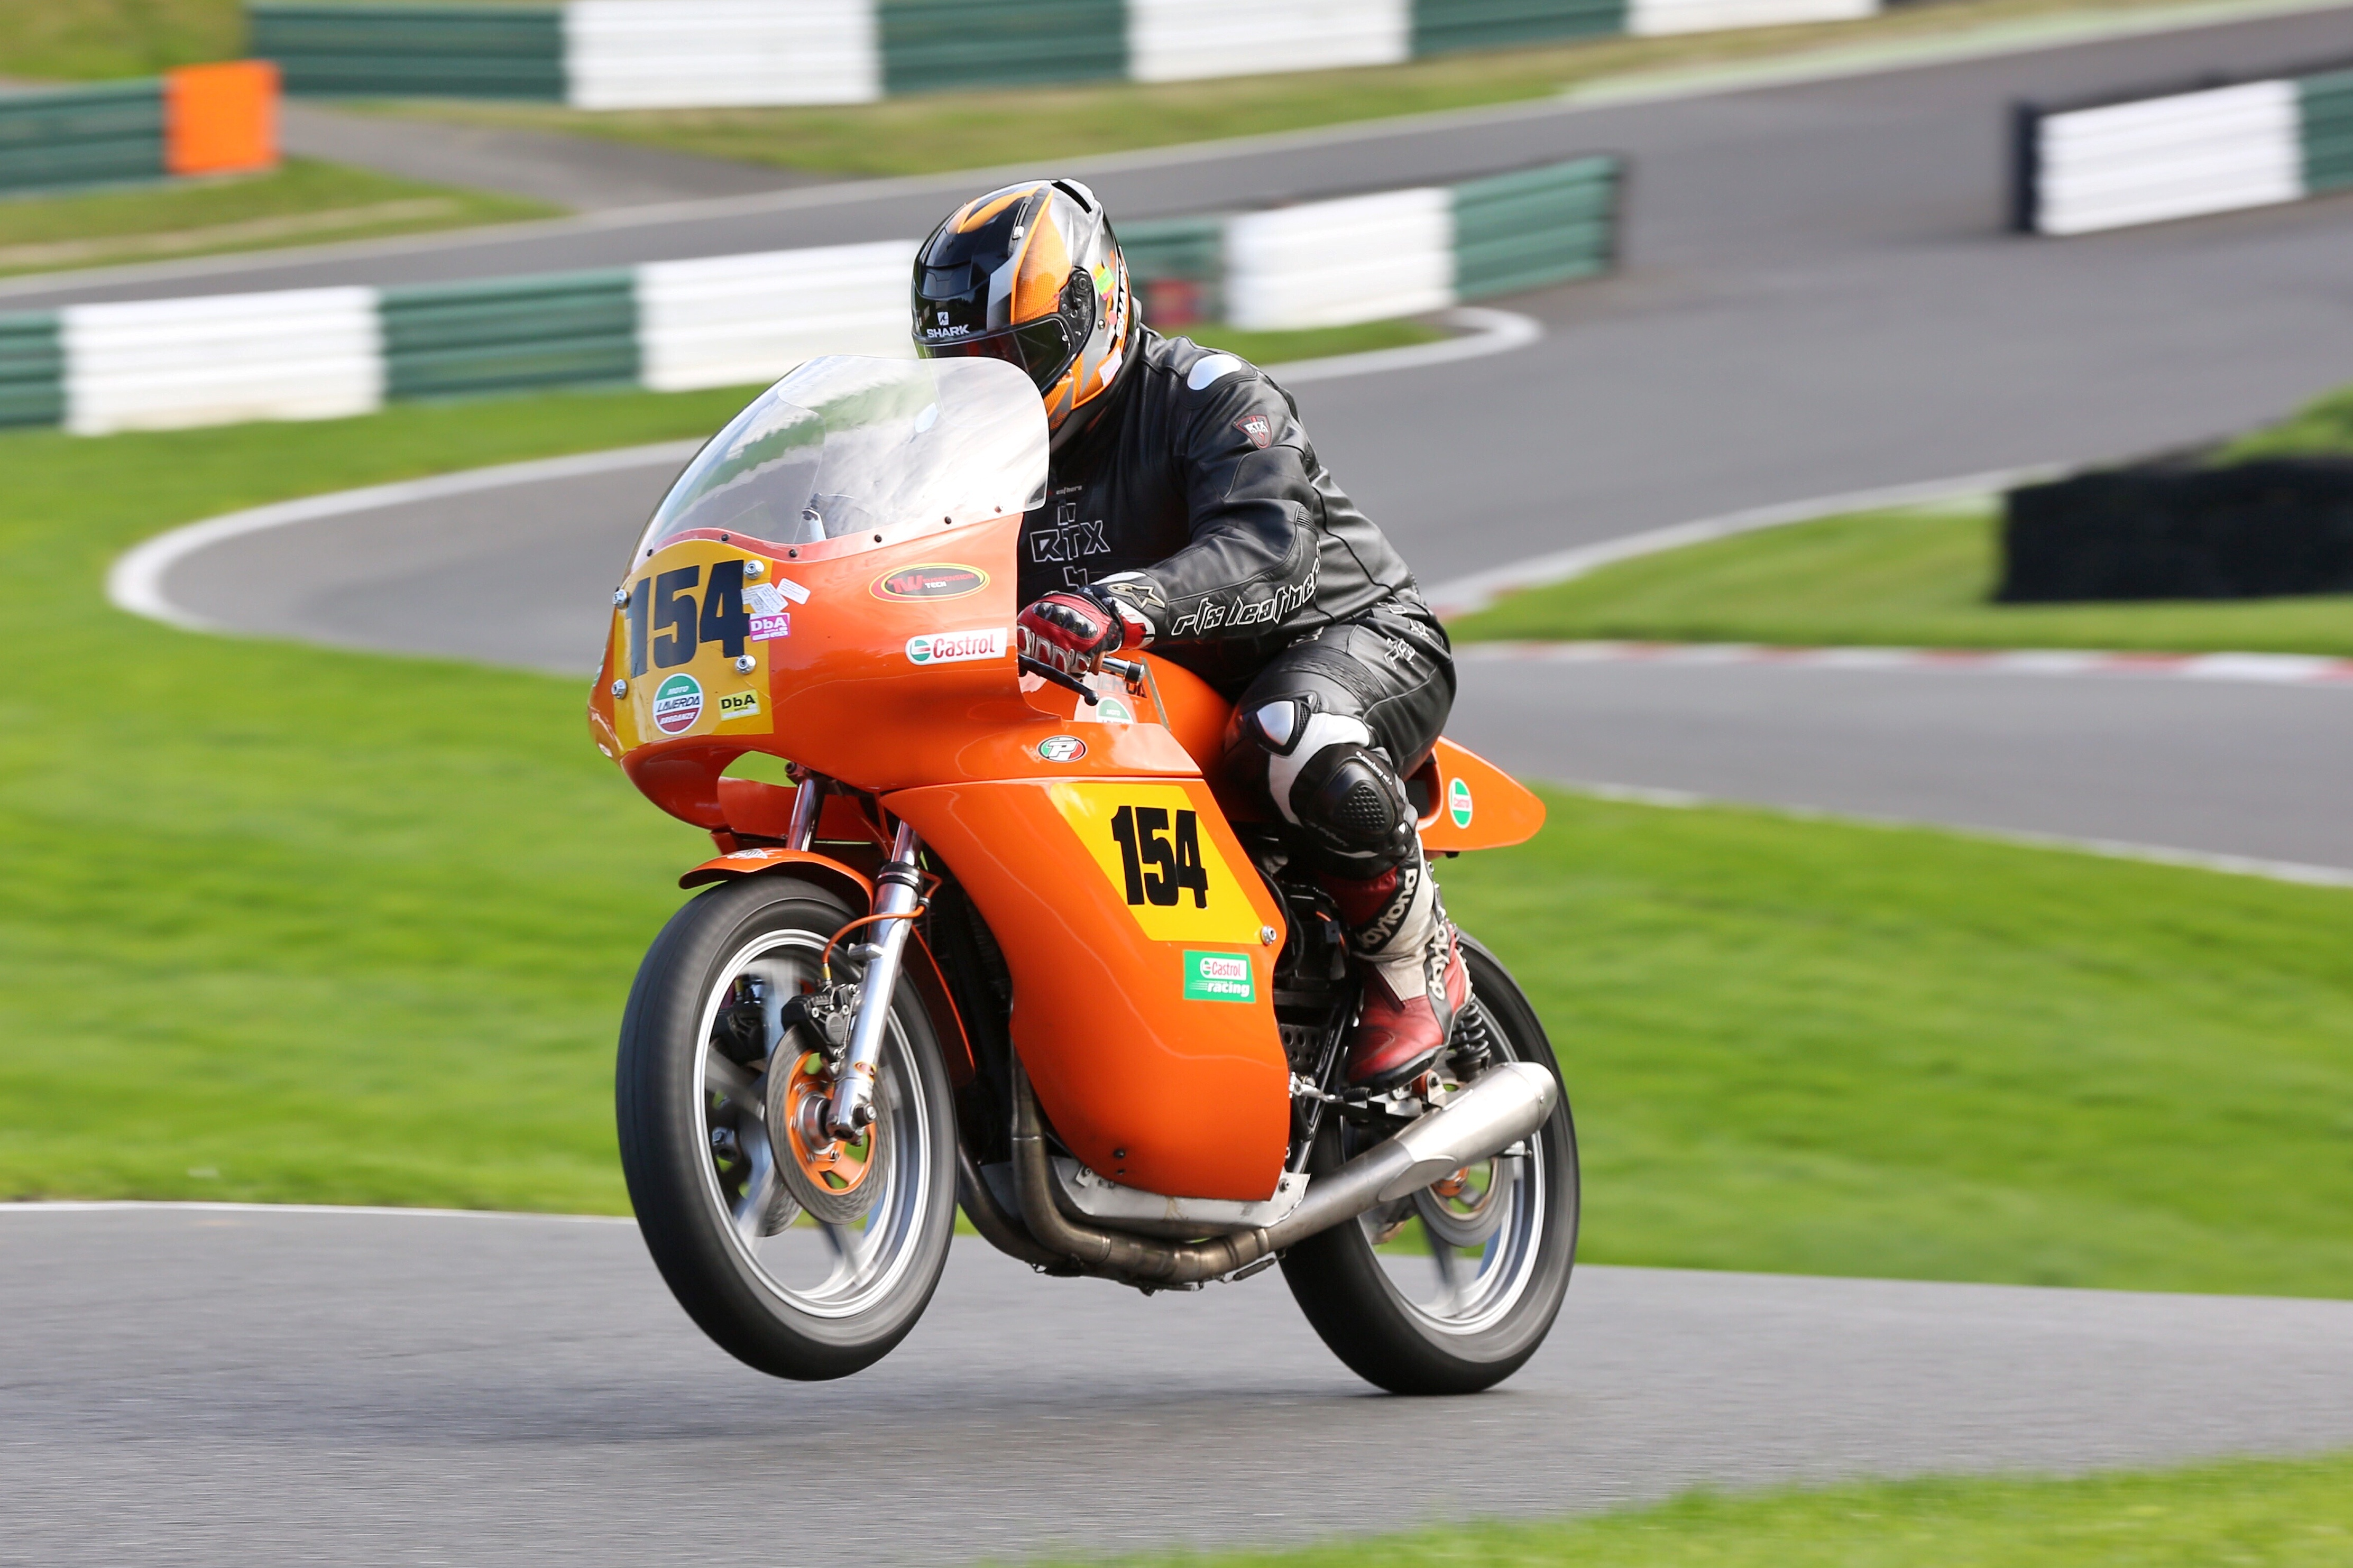 Over the Mountain Section at Cadwell